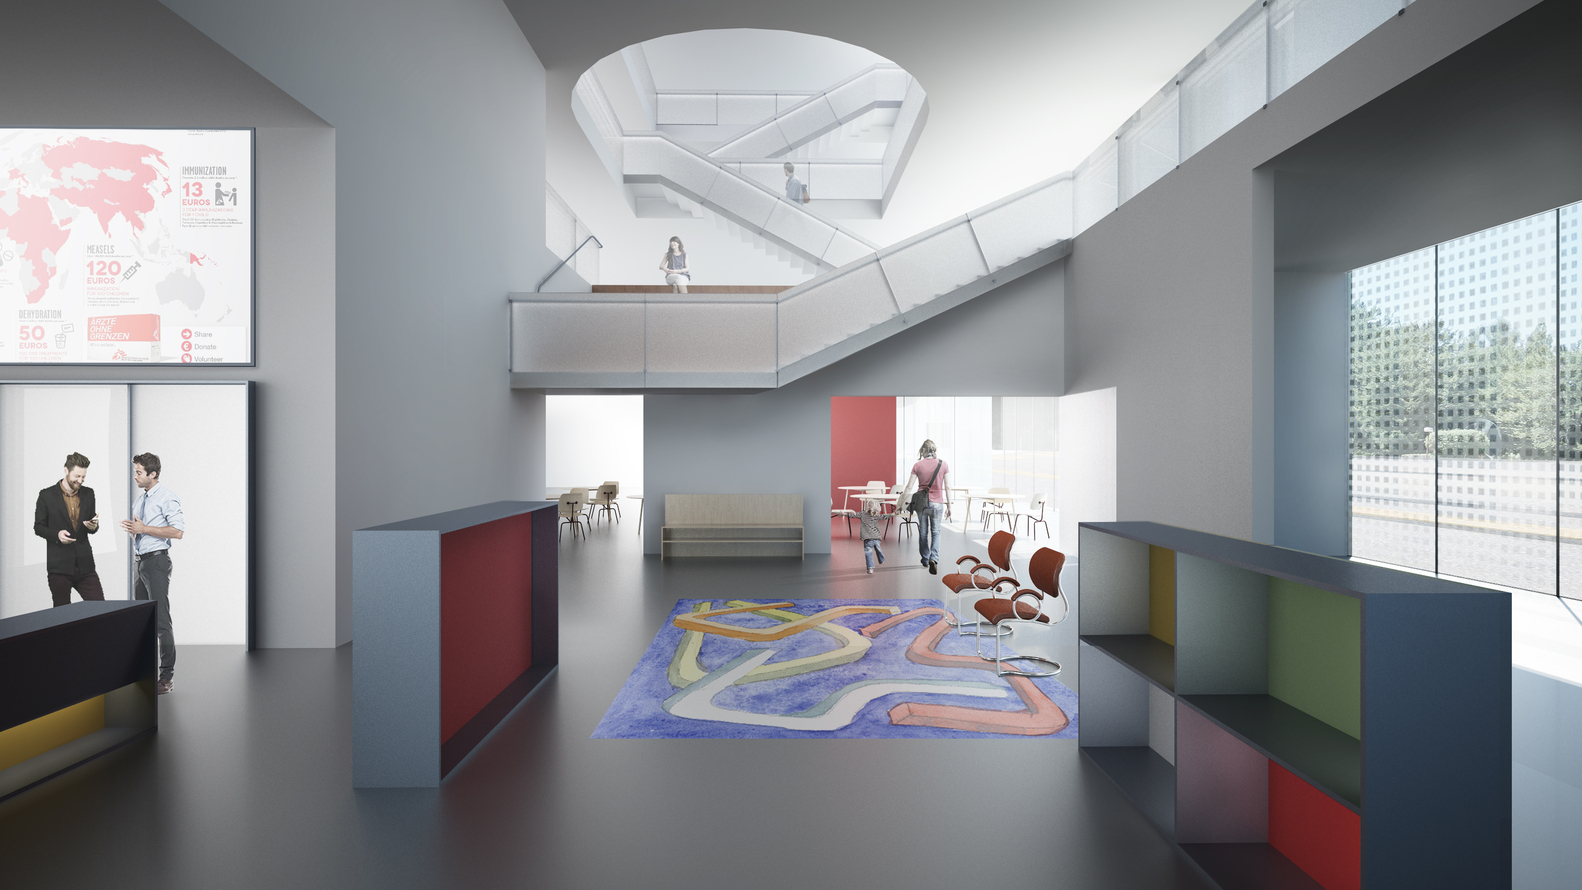 office foyer designs. Steven Holl Architects Designs Colored Photovoltaic Glass Building For Doctors Without Borders\u0027 Geneva Office, Office Foyer F